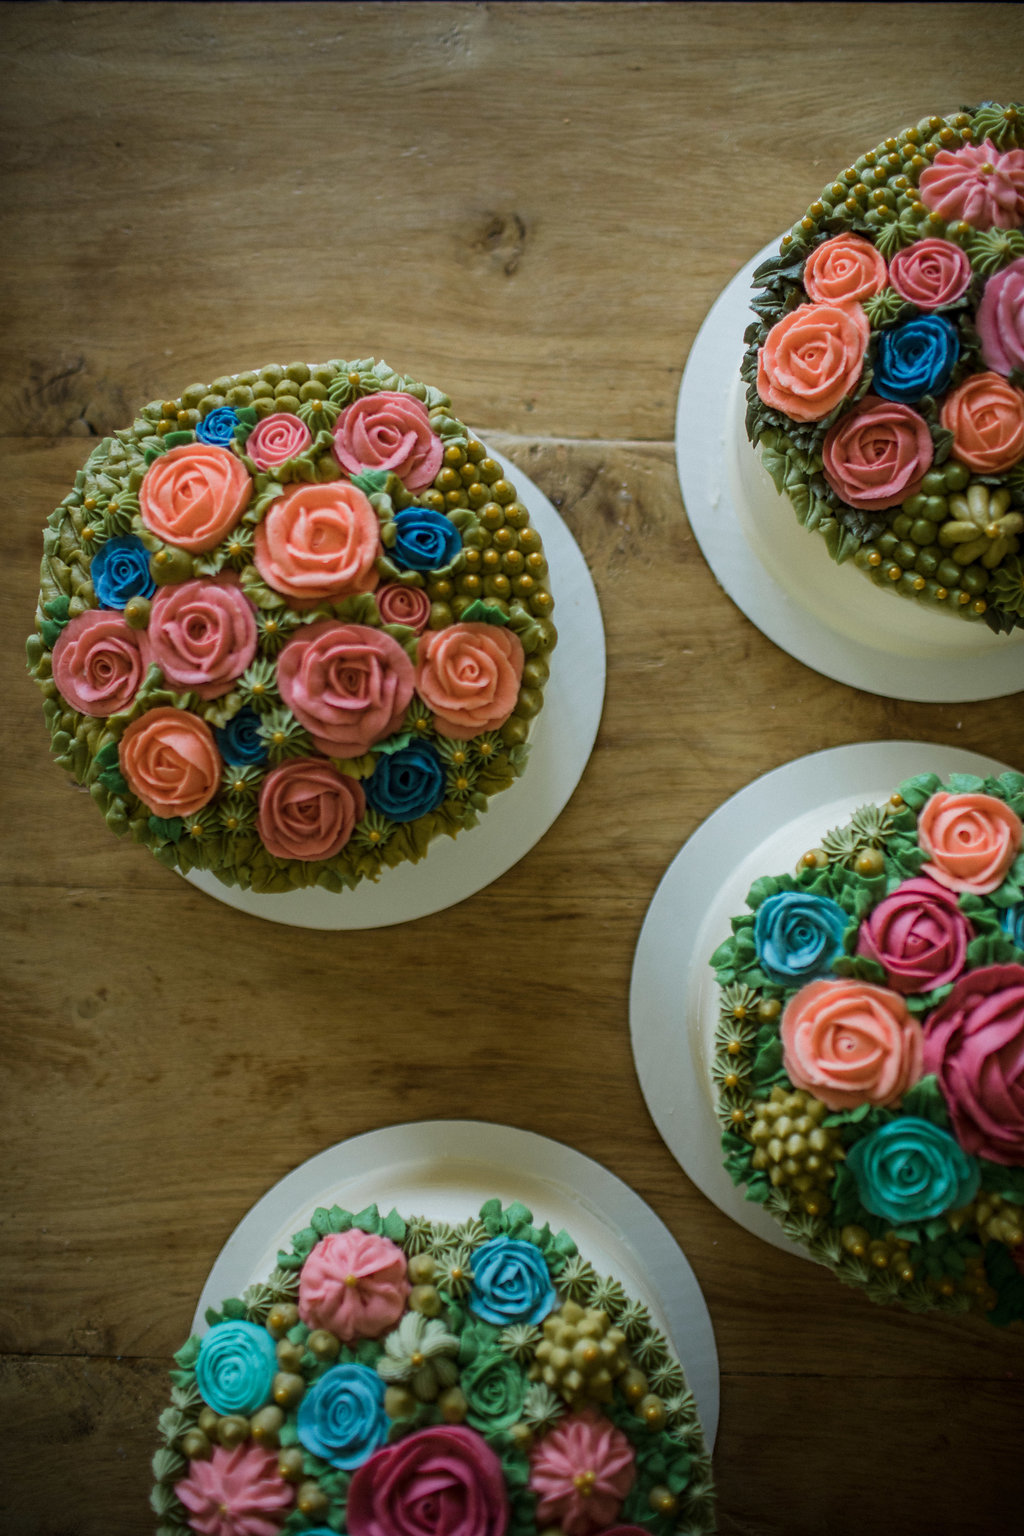 Three Months Out Practice Buttercream Flowers Watch How To Videos Embrace The Bedtime Instagram Session And Search Buttercreamrose Often Order All Of